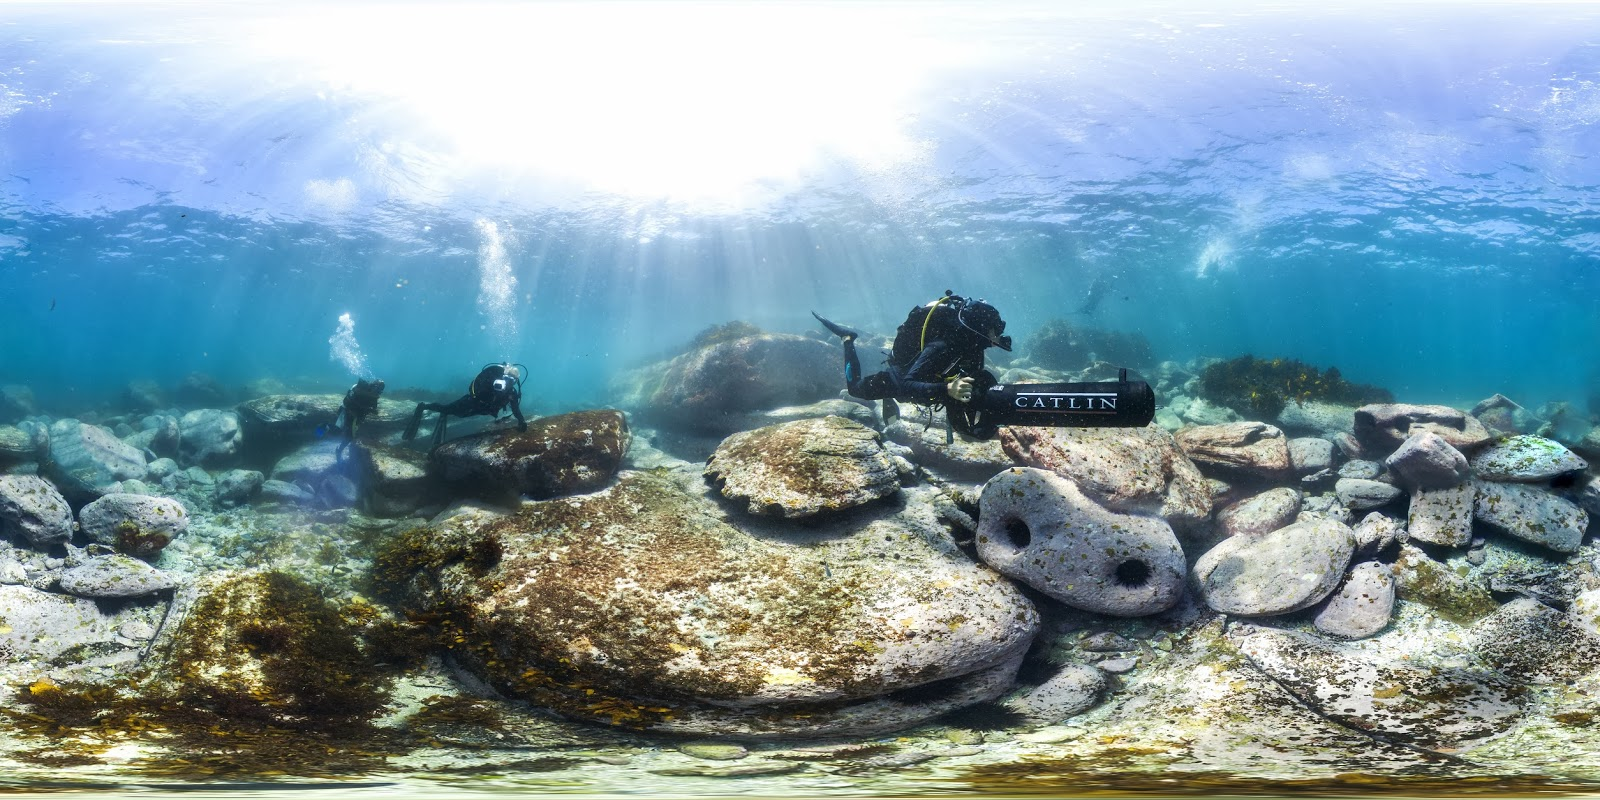 Google is capturing underwater Street View photos around Sydney's harbour and coastline